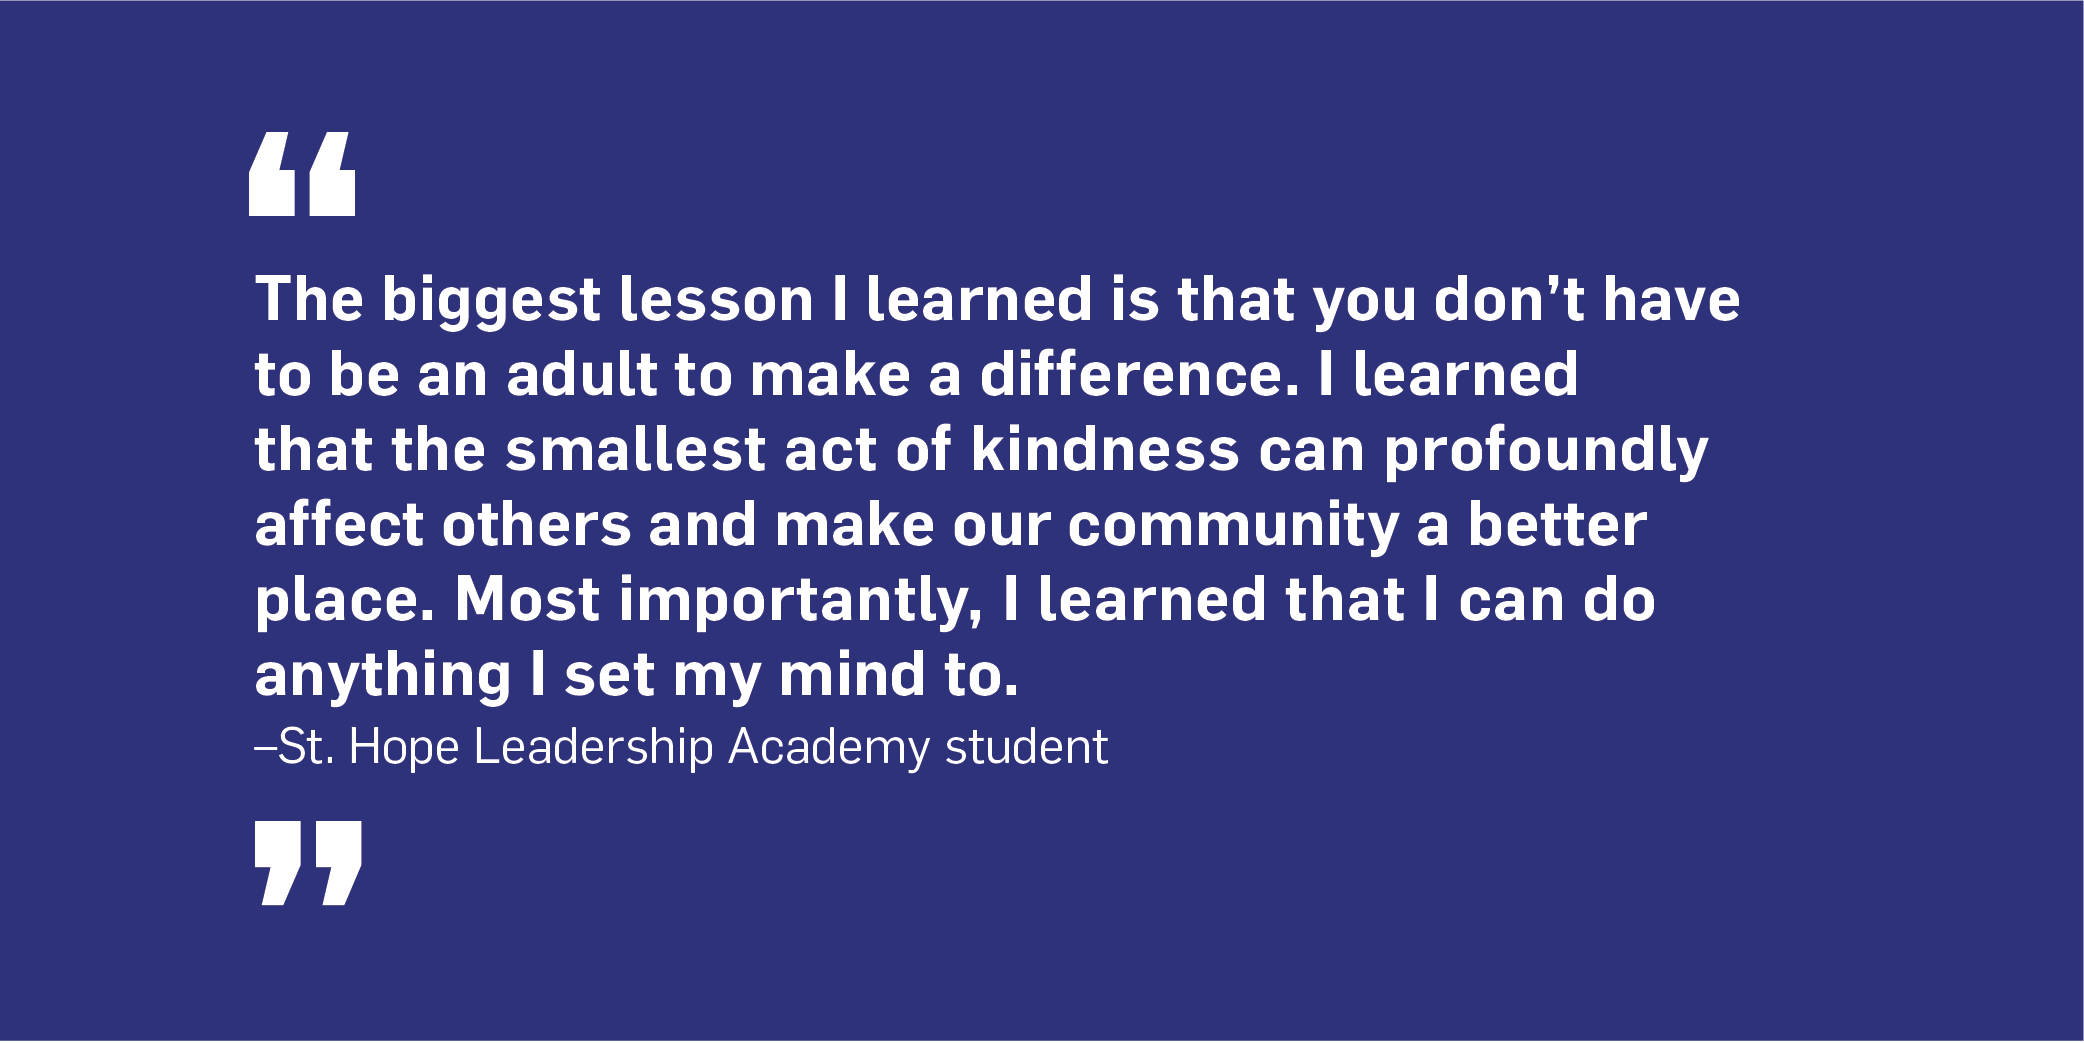 Quote: The biggest lesson I learned is that you don't have to be an adult to make a difference. I learned that the smallest act of kindness can profoundly affect others and make our community a better place. Most importantly, I learned that I can do anything I set my mind to. Unquote. St. Hope Leadership Academy Student.